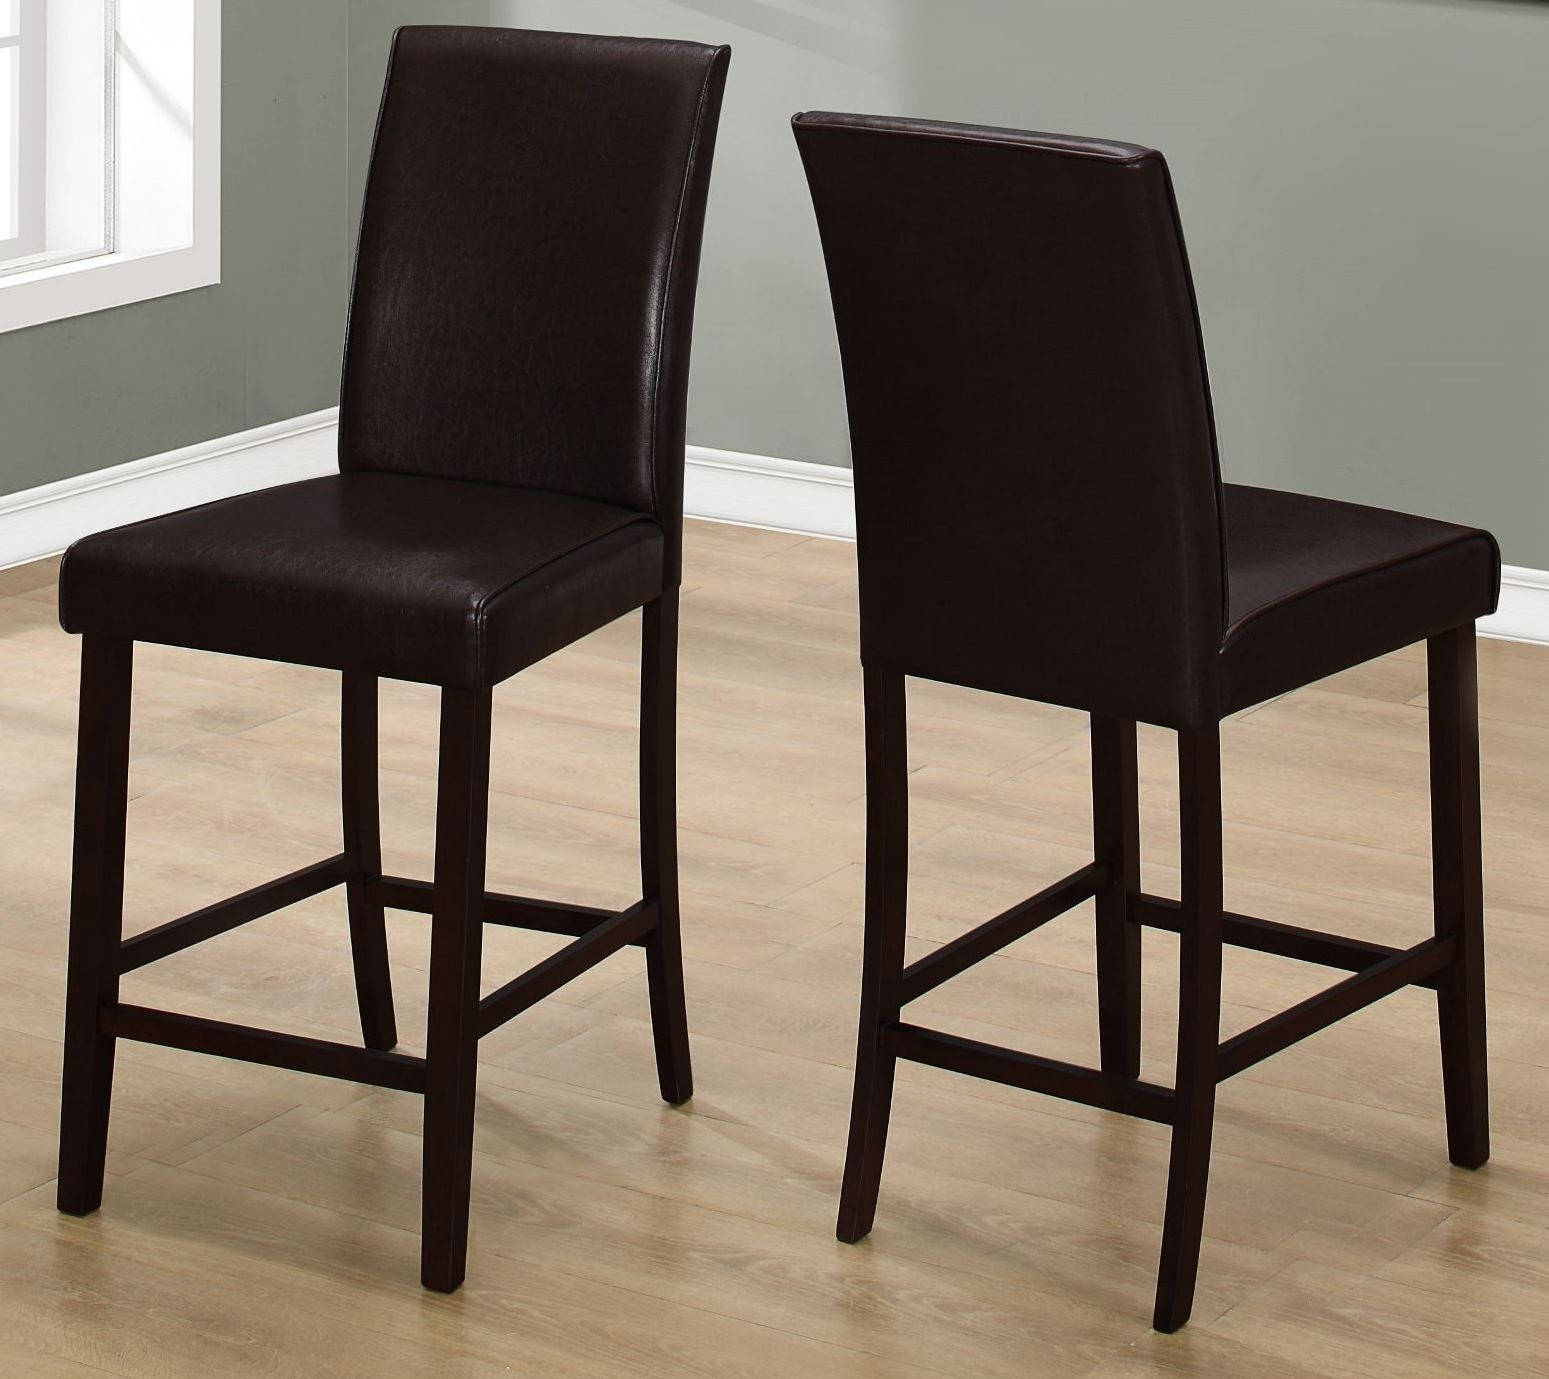 Bar Height Dining Chairs Brown Leather Counter Height Dining Chair Set Of 2 From